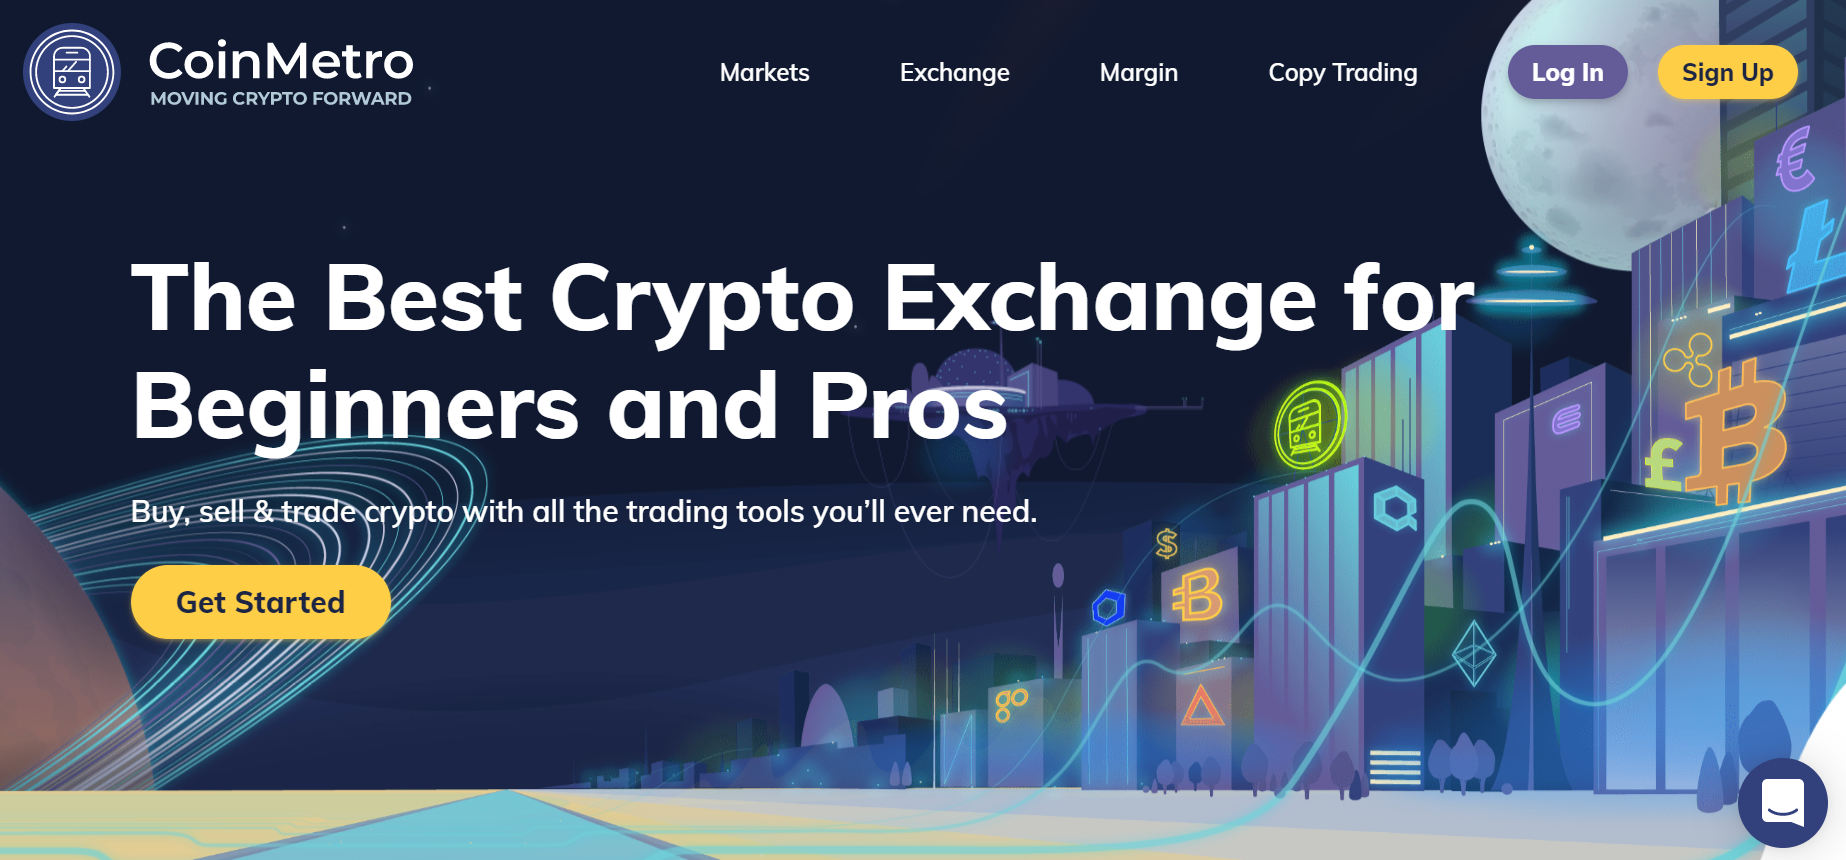 CoinMetro cryptocurrency review homepage